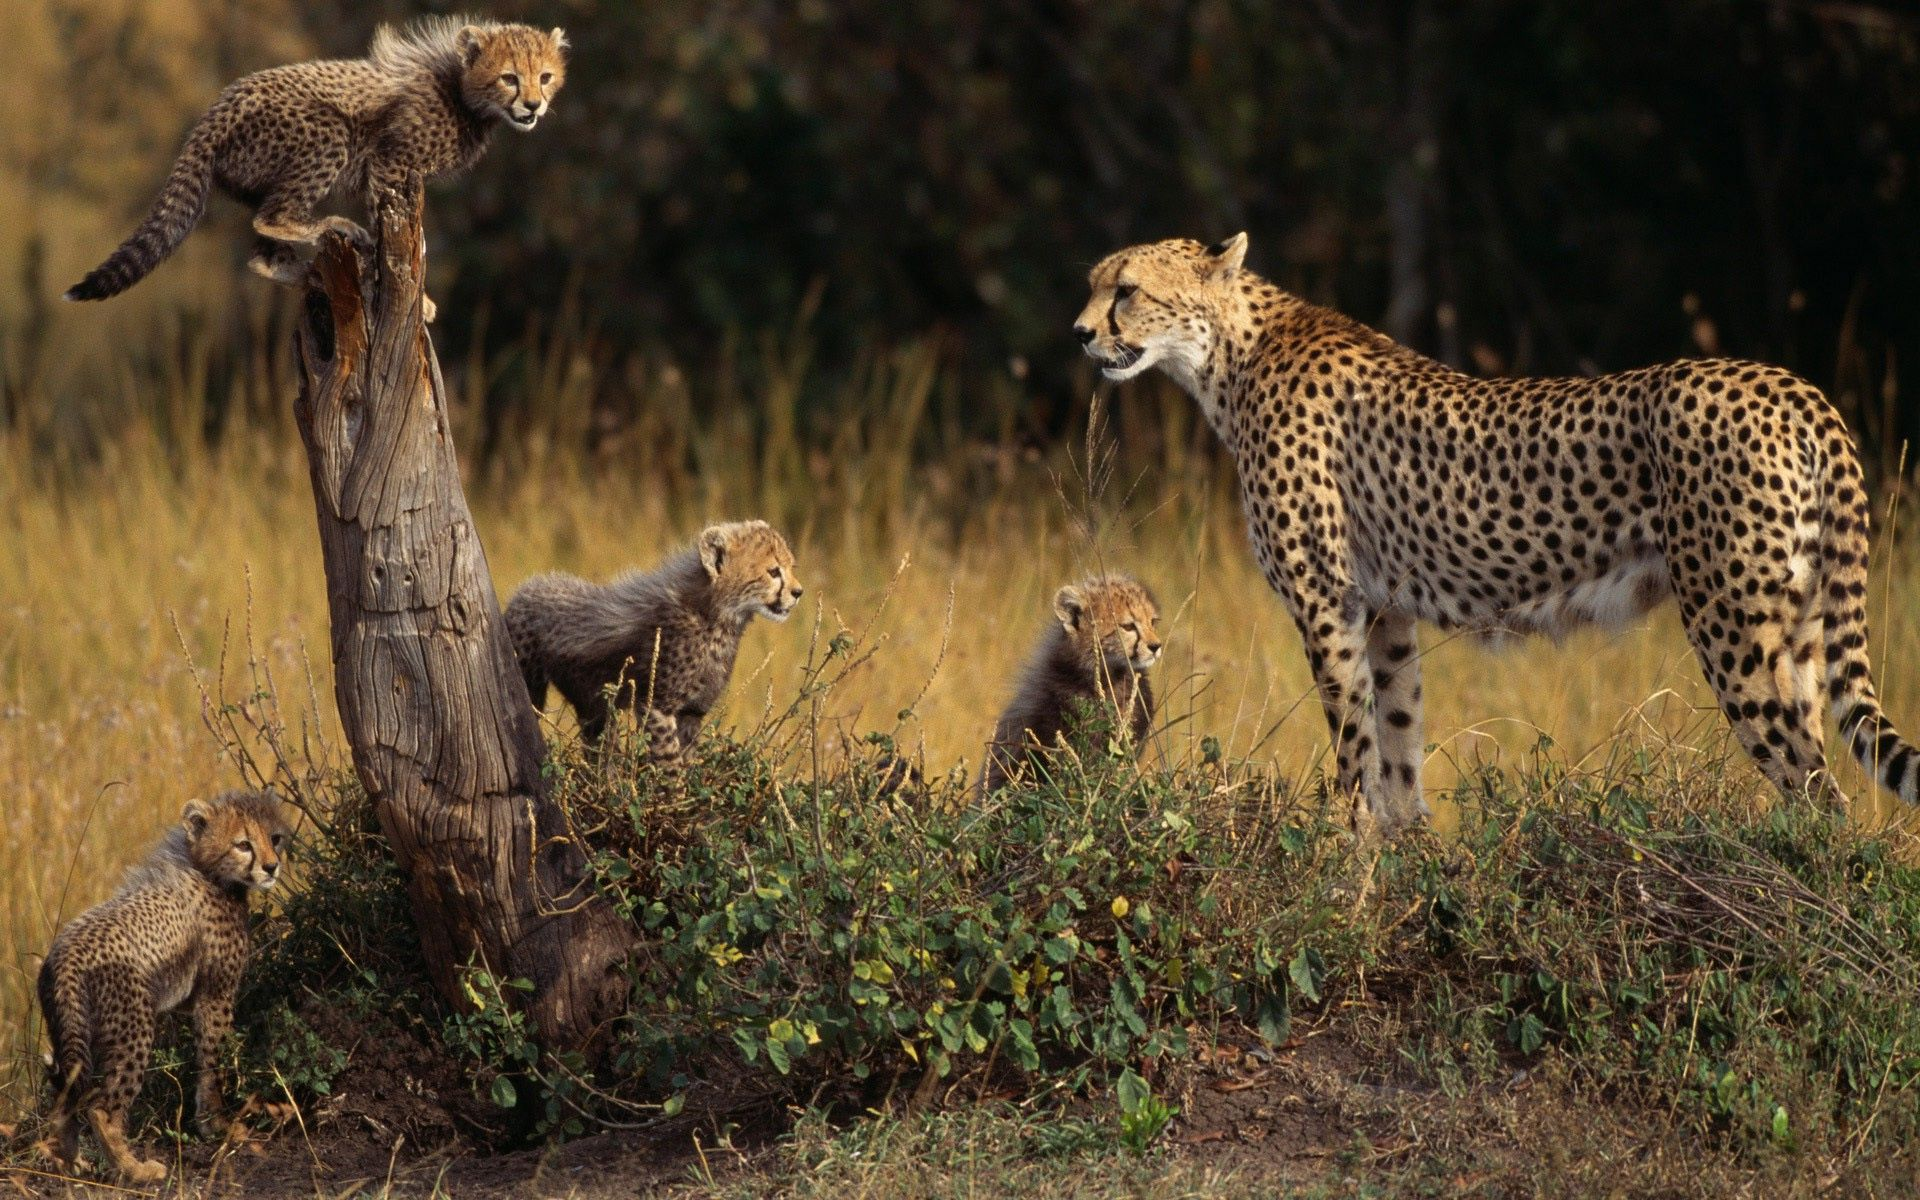 Cheetah photos animals hd wallpapers free download | HD Wallpapers ...